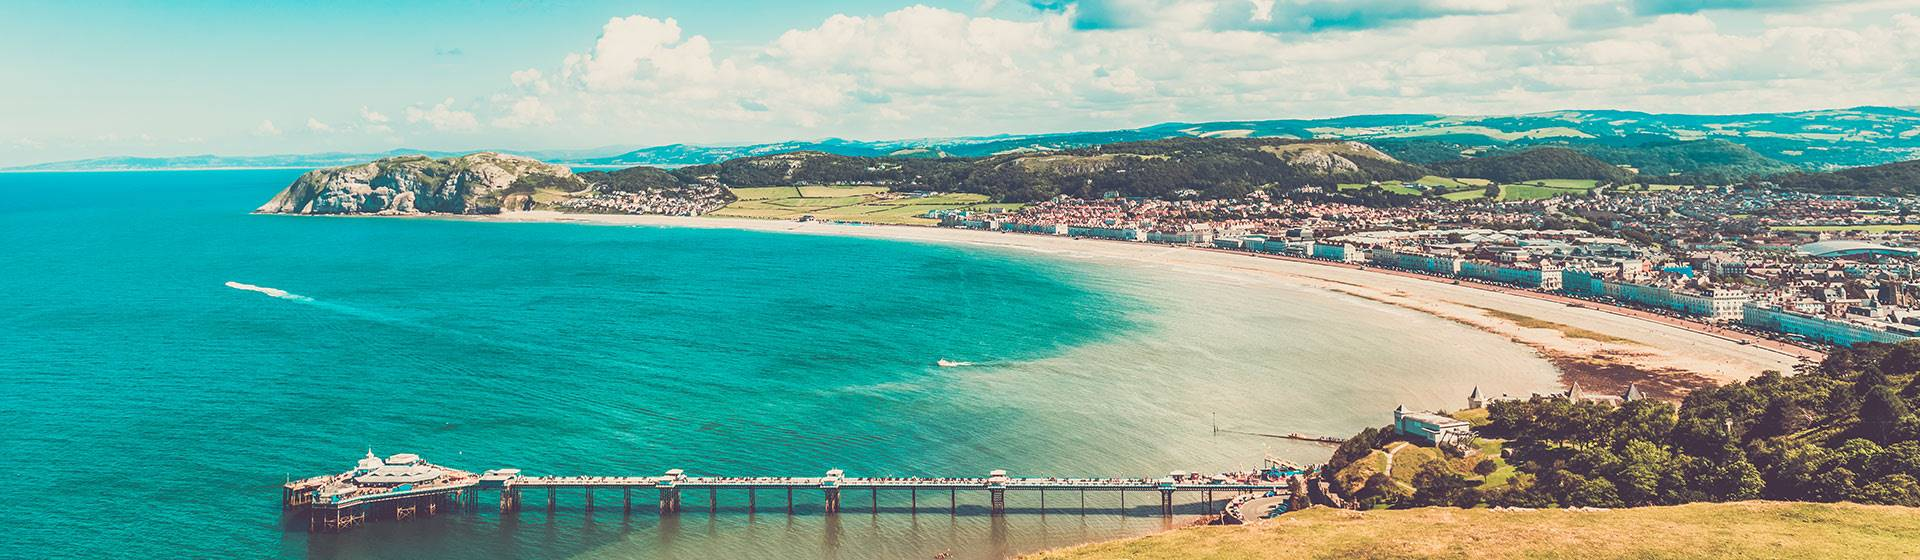 Llandudno & the Wonders of North Wales